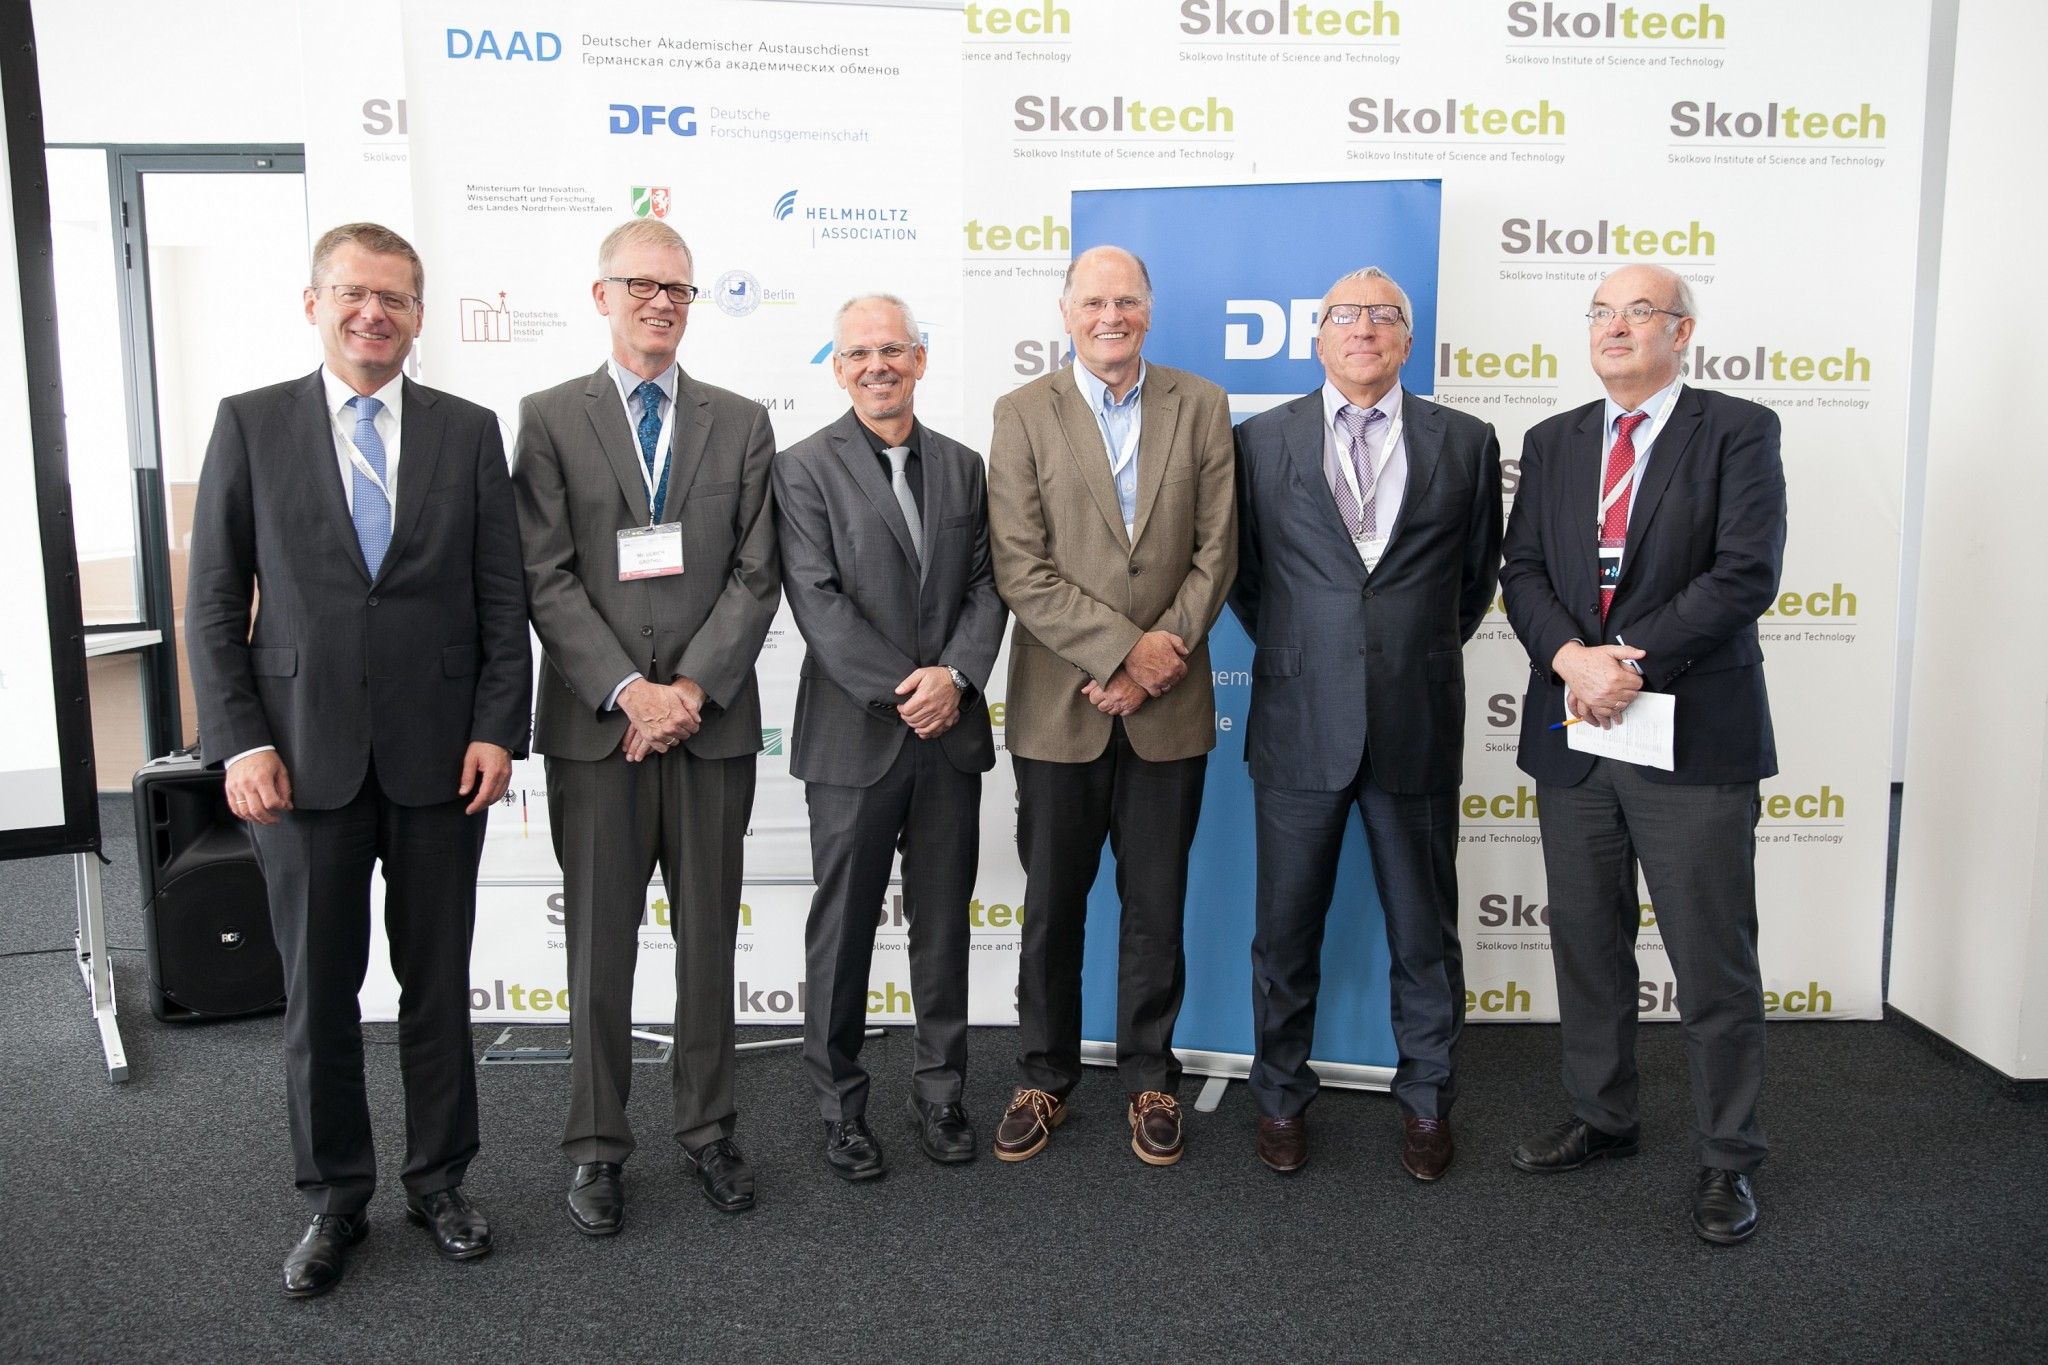 Some of the event's organizers and key participants, including, from left, Thomas Graf, Head of the Department for Economy and Science, Embassy of the Federal Republic of Germany in Moscow; Ulrich Grothus, Deputy Secretary General of the DAAD; Professor Dr. Frank Allgöwer, Vice President of the DFG; academic program coordinator and Technical University of Munich Professor Dr. Werner Mewes; Skoltech President Alexander Kuleshov and Skoltech Provost Rupert Gerzer. Photo: DFG.